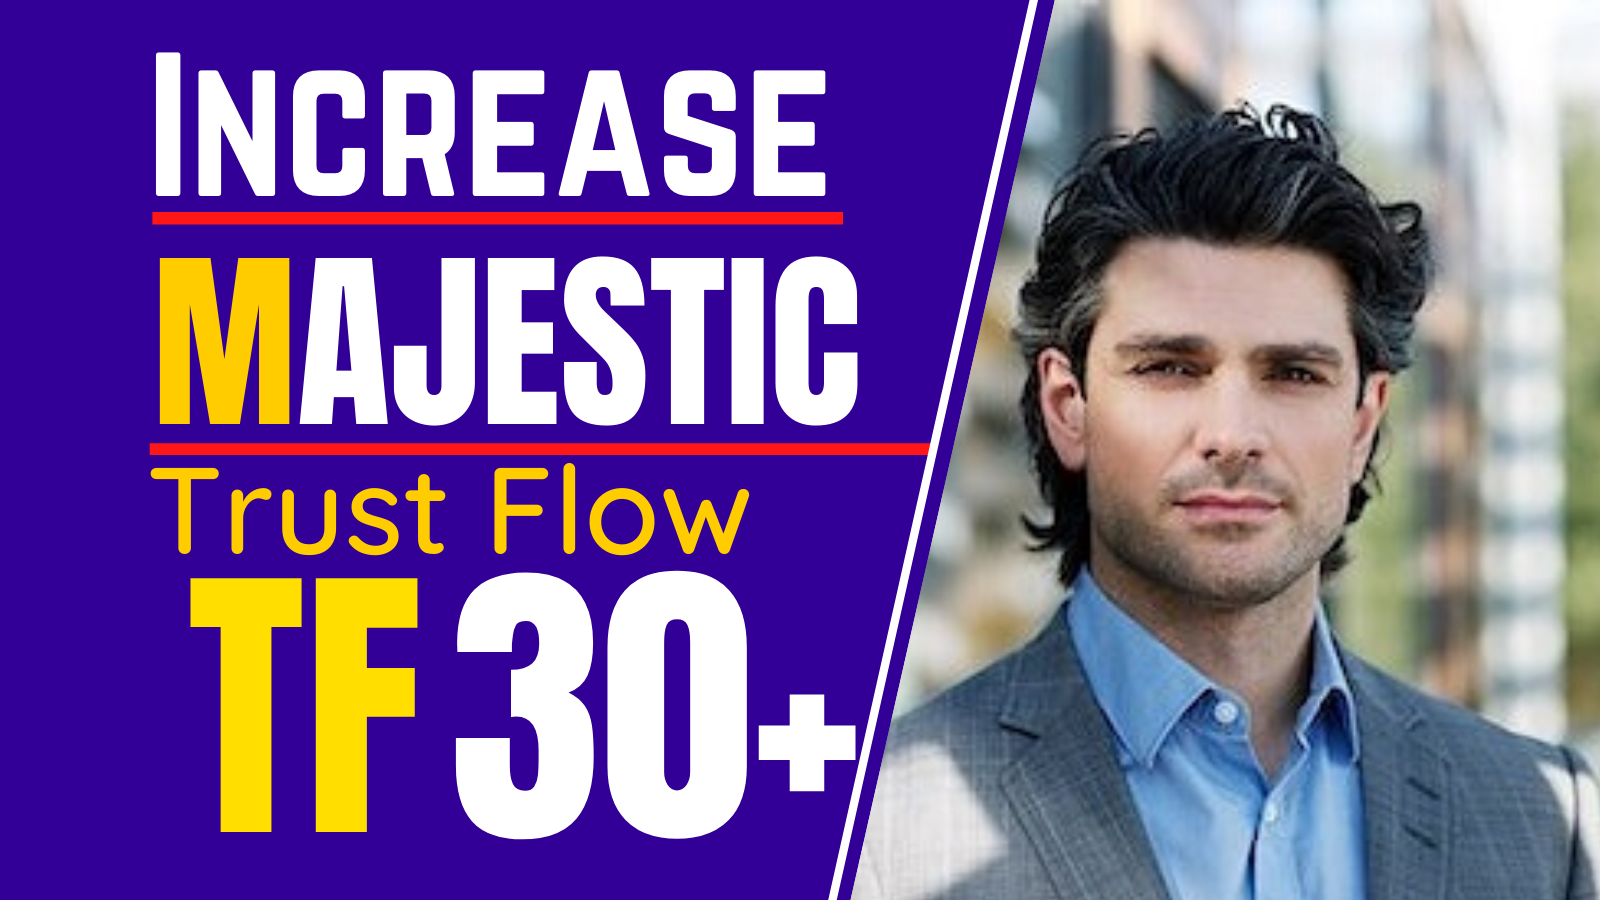 I will increase Trust Flow Increase Majestic TF 30 plus guaranteed